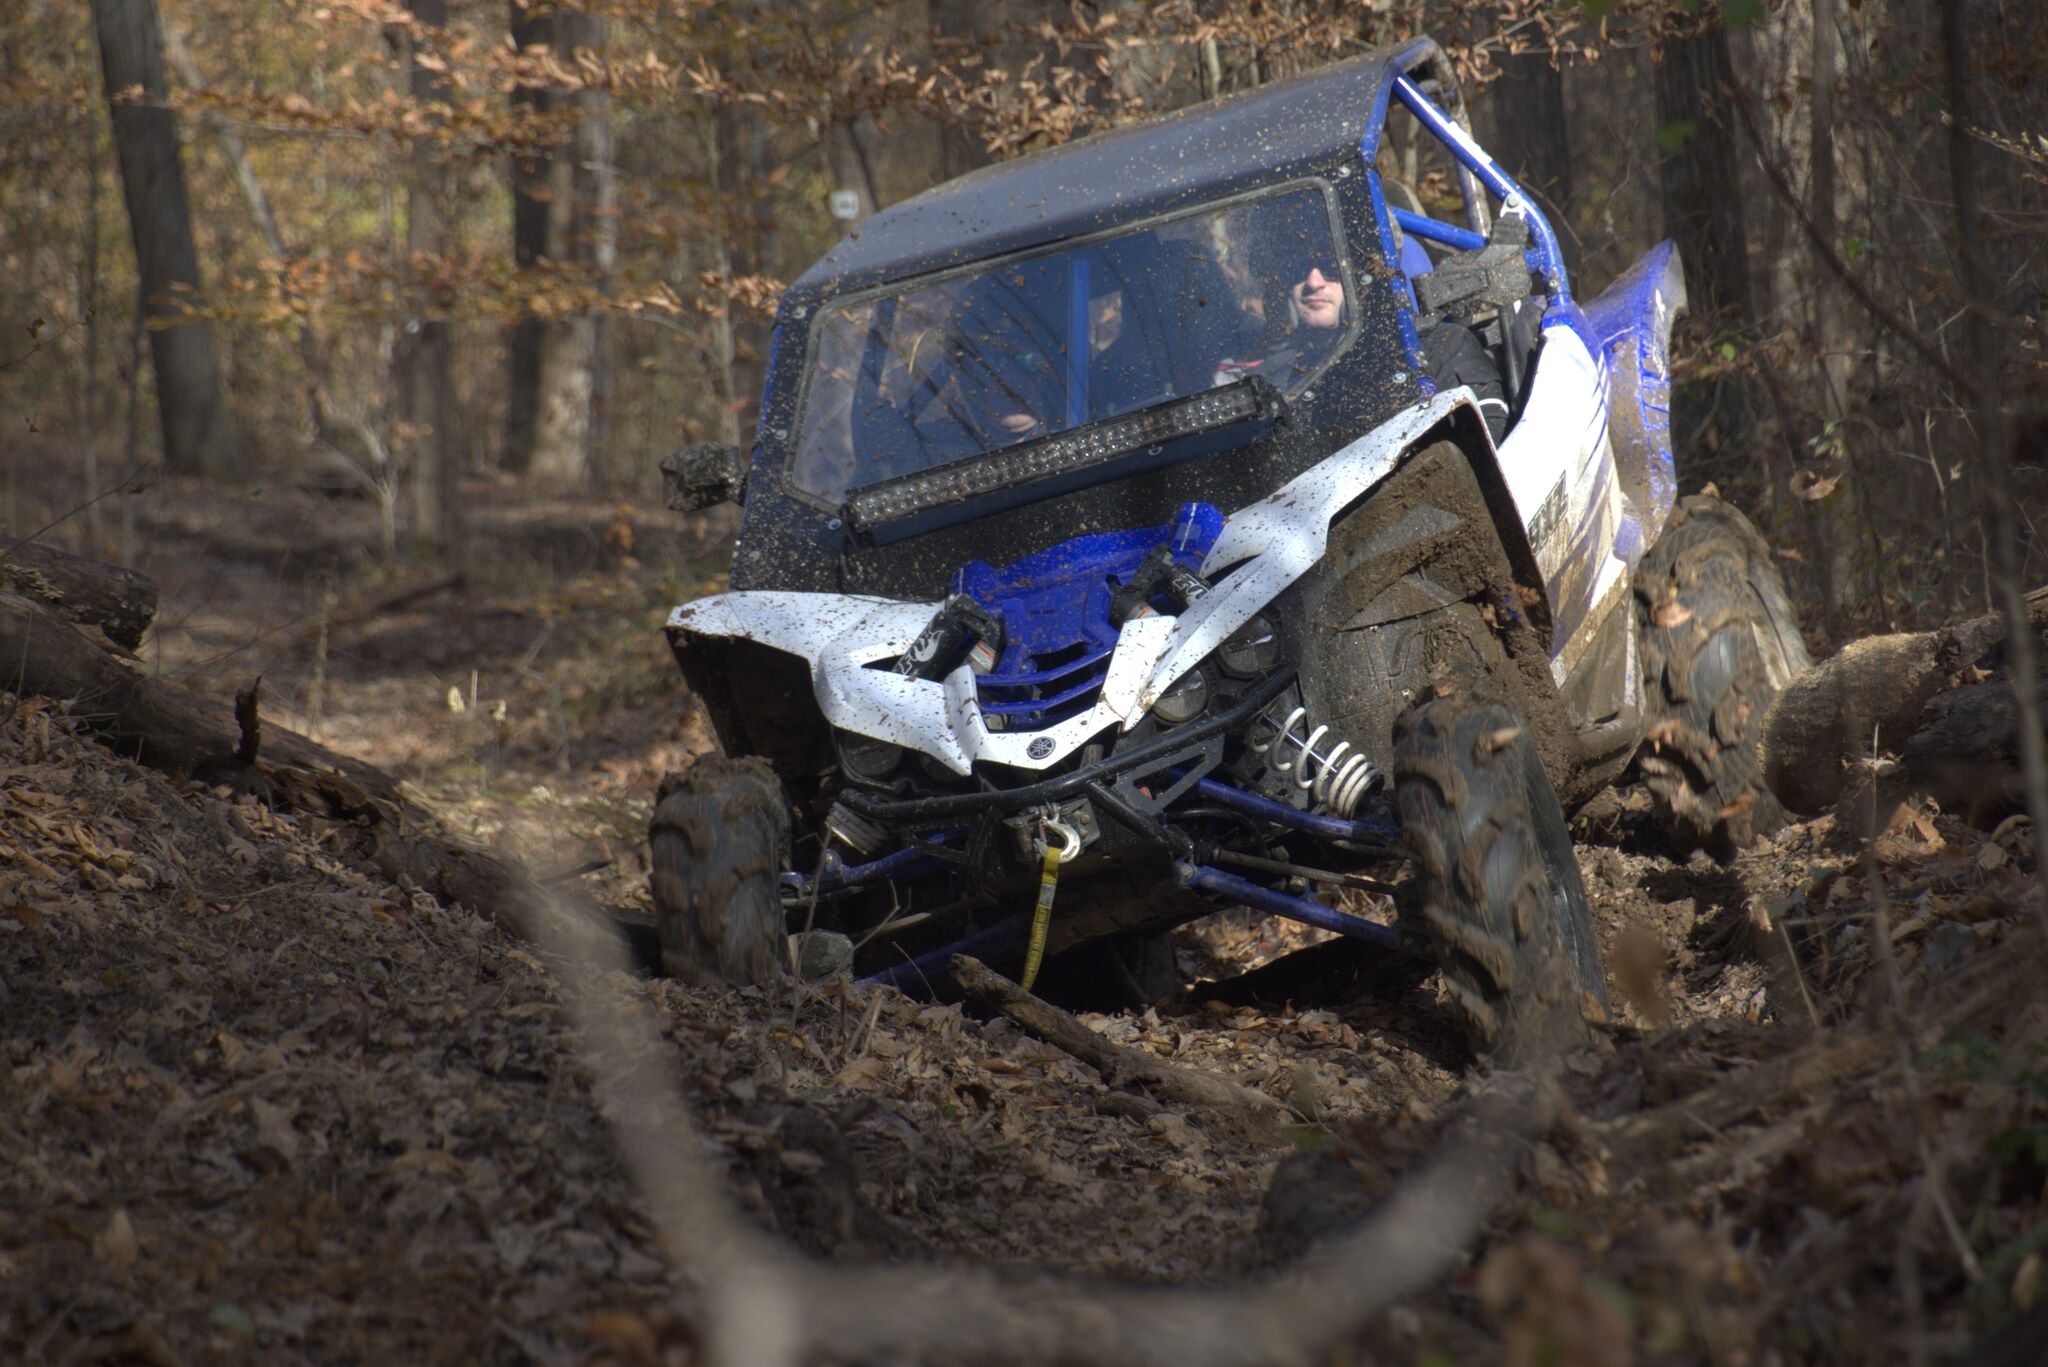 Yamaha XTReme Terrain Challenge - Yamaha-Exclusive ATV and Side-by-Side Off-Roading Adventure Returns